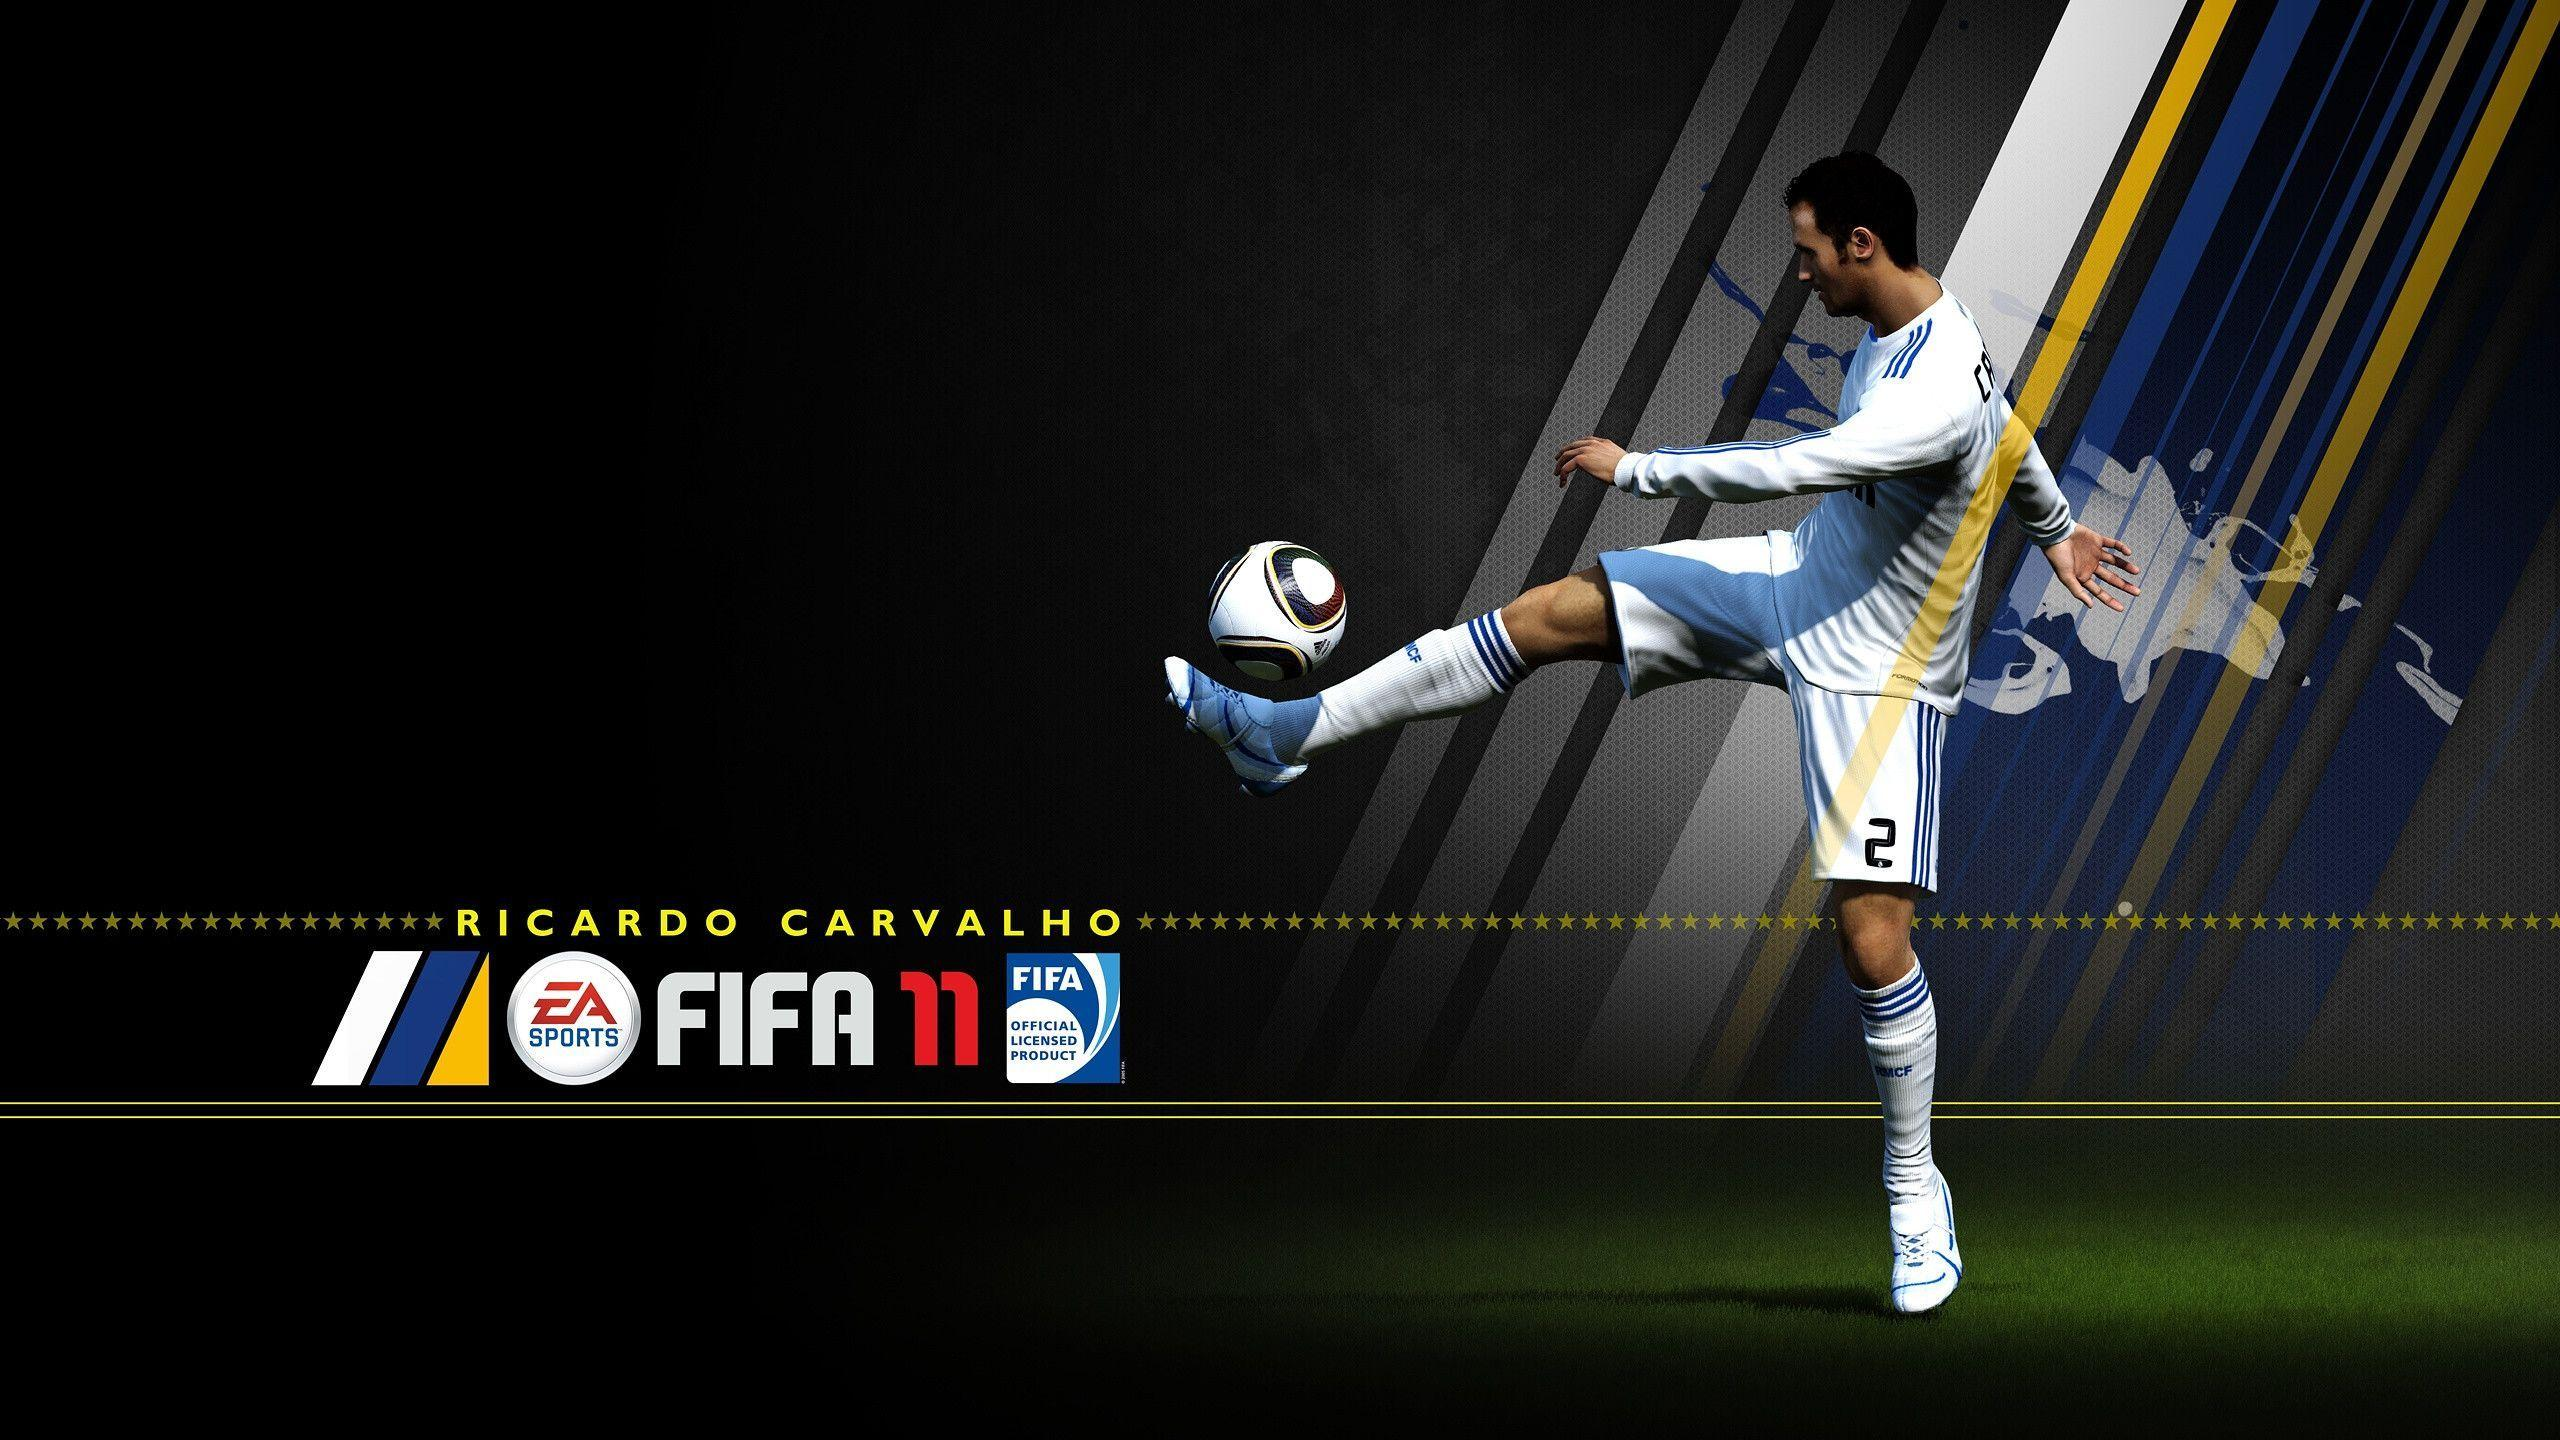 FIFA Background 7